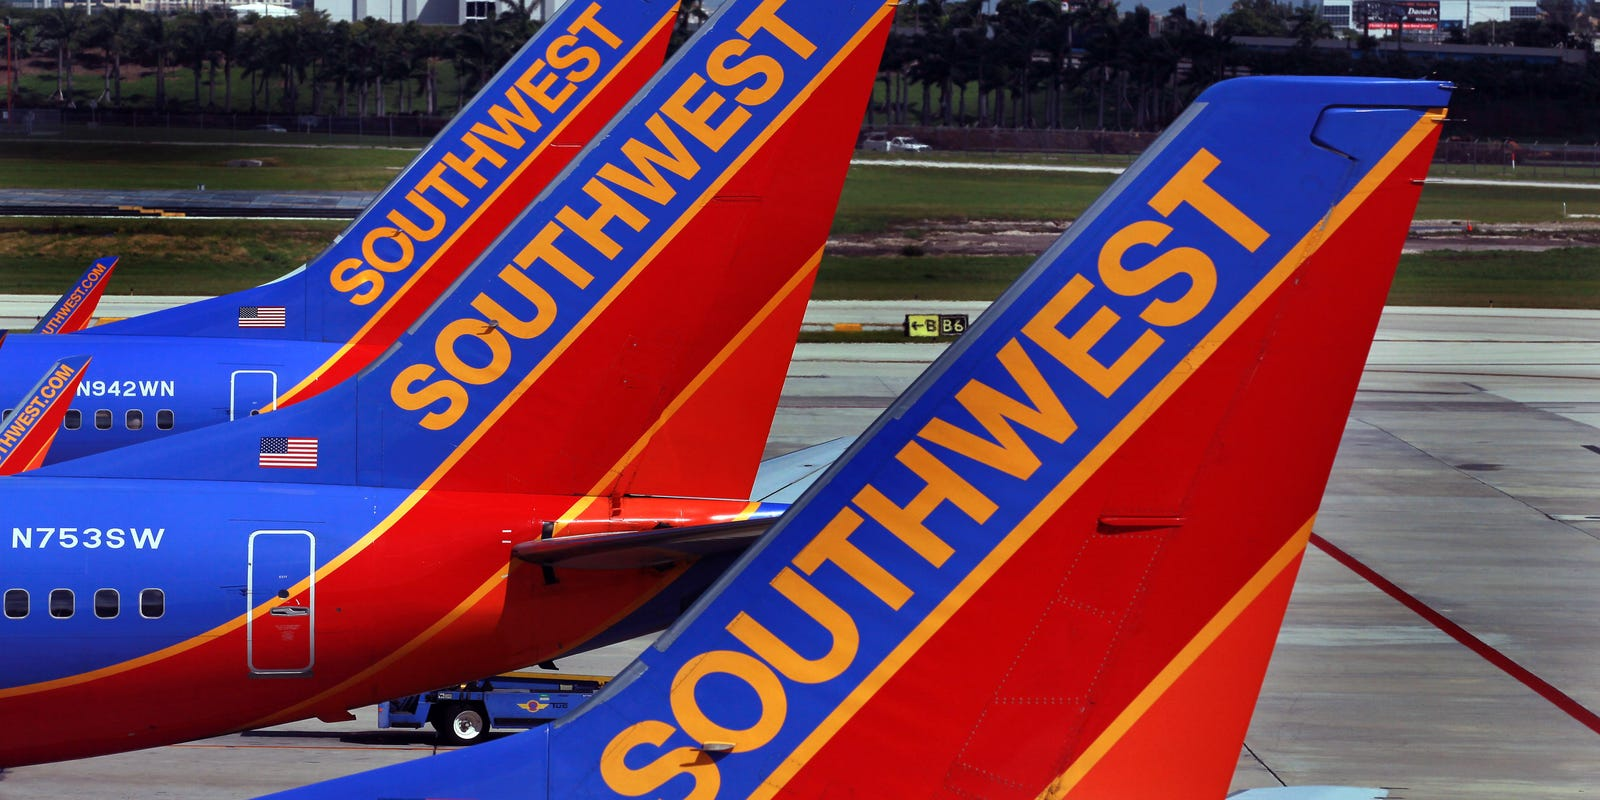 Southwest Ceo Bags Will Still Fly Free